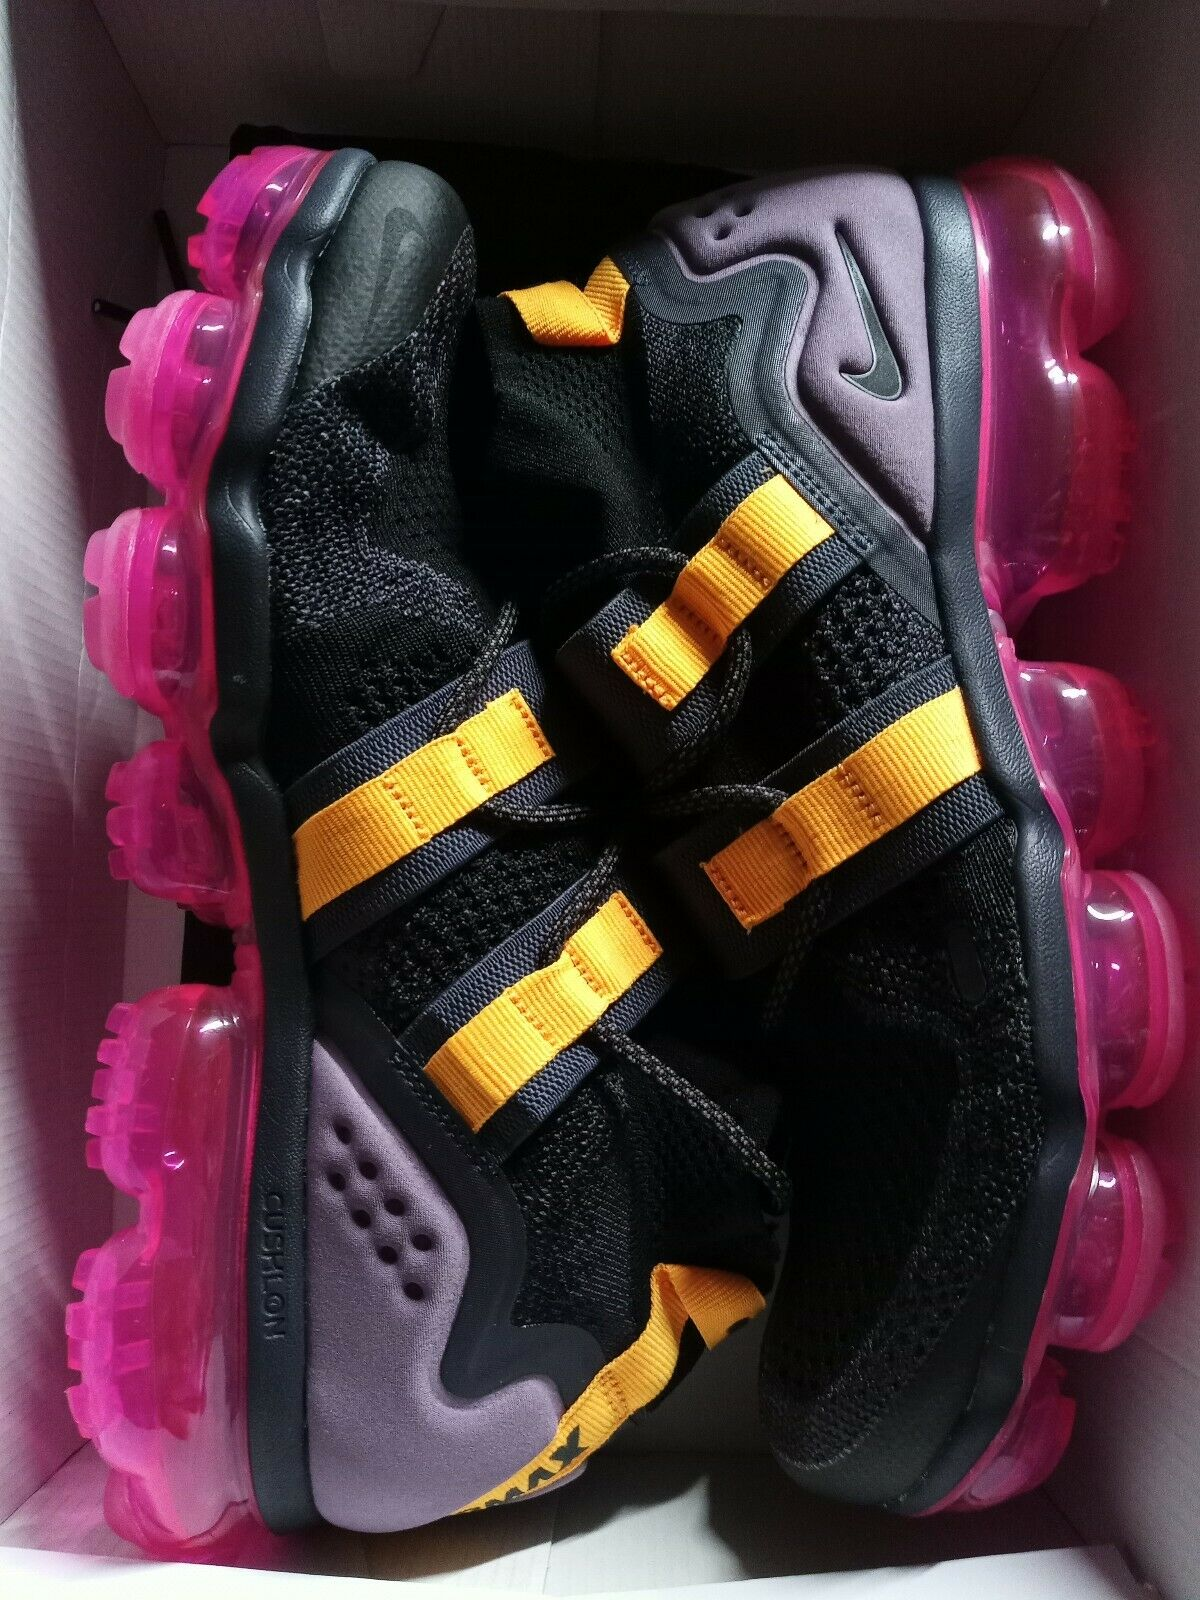 9 MEN'S NIKE AIR VAPORMAX FK UTILITY PINK BLAST Black Men's AH6834-006